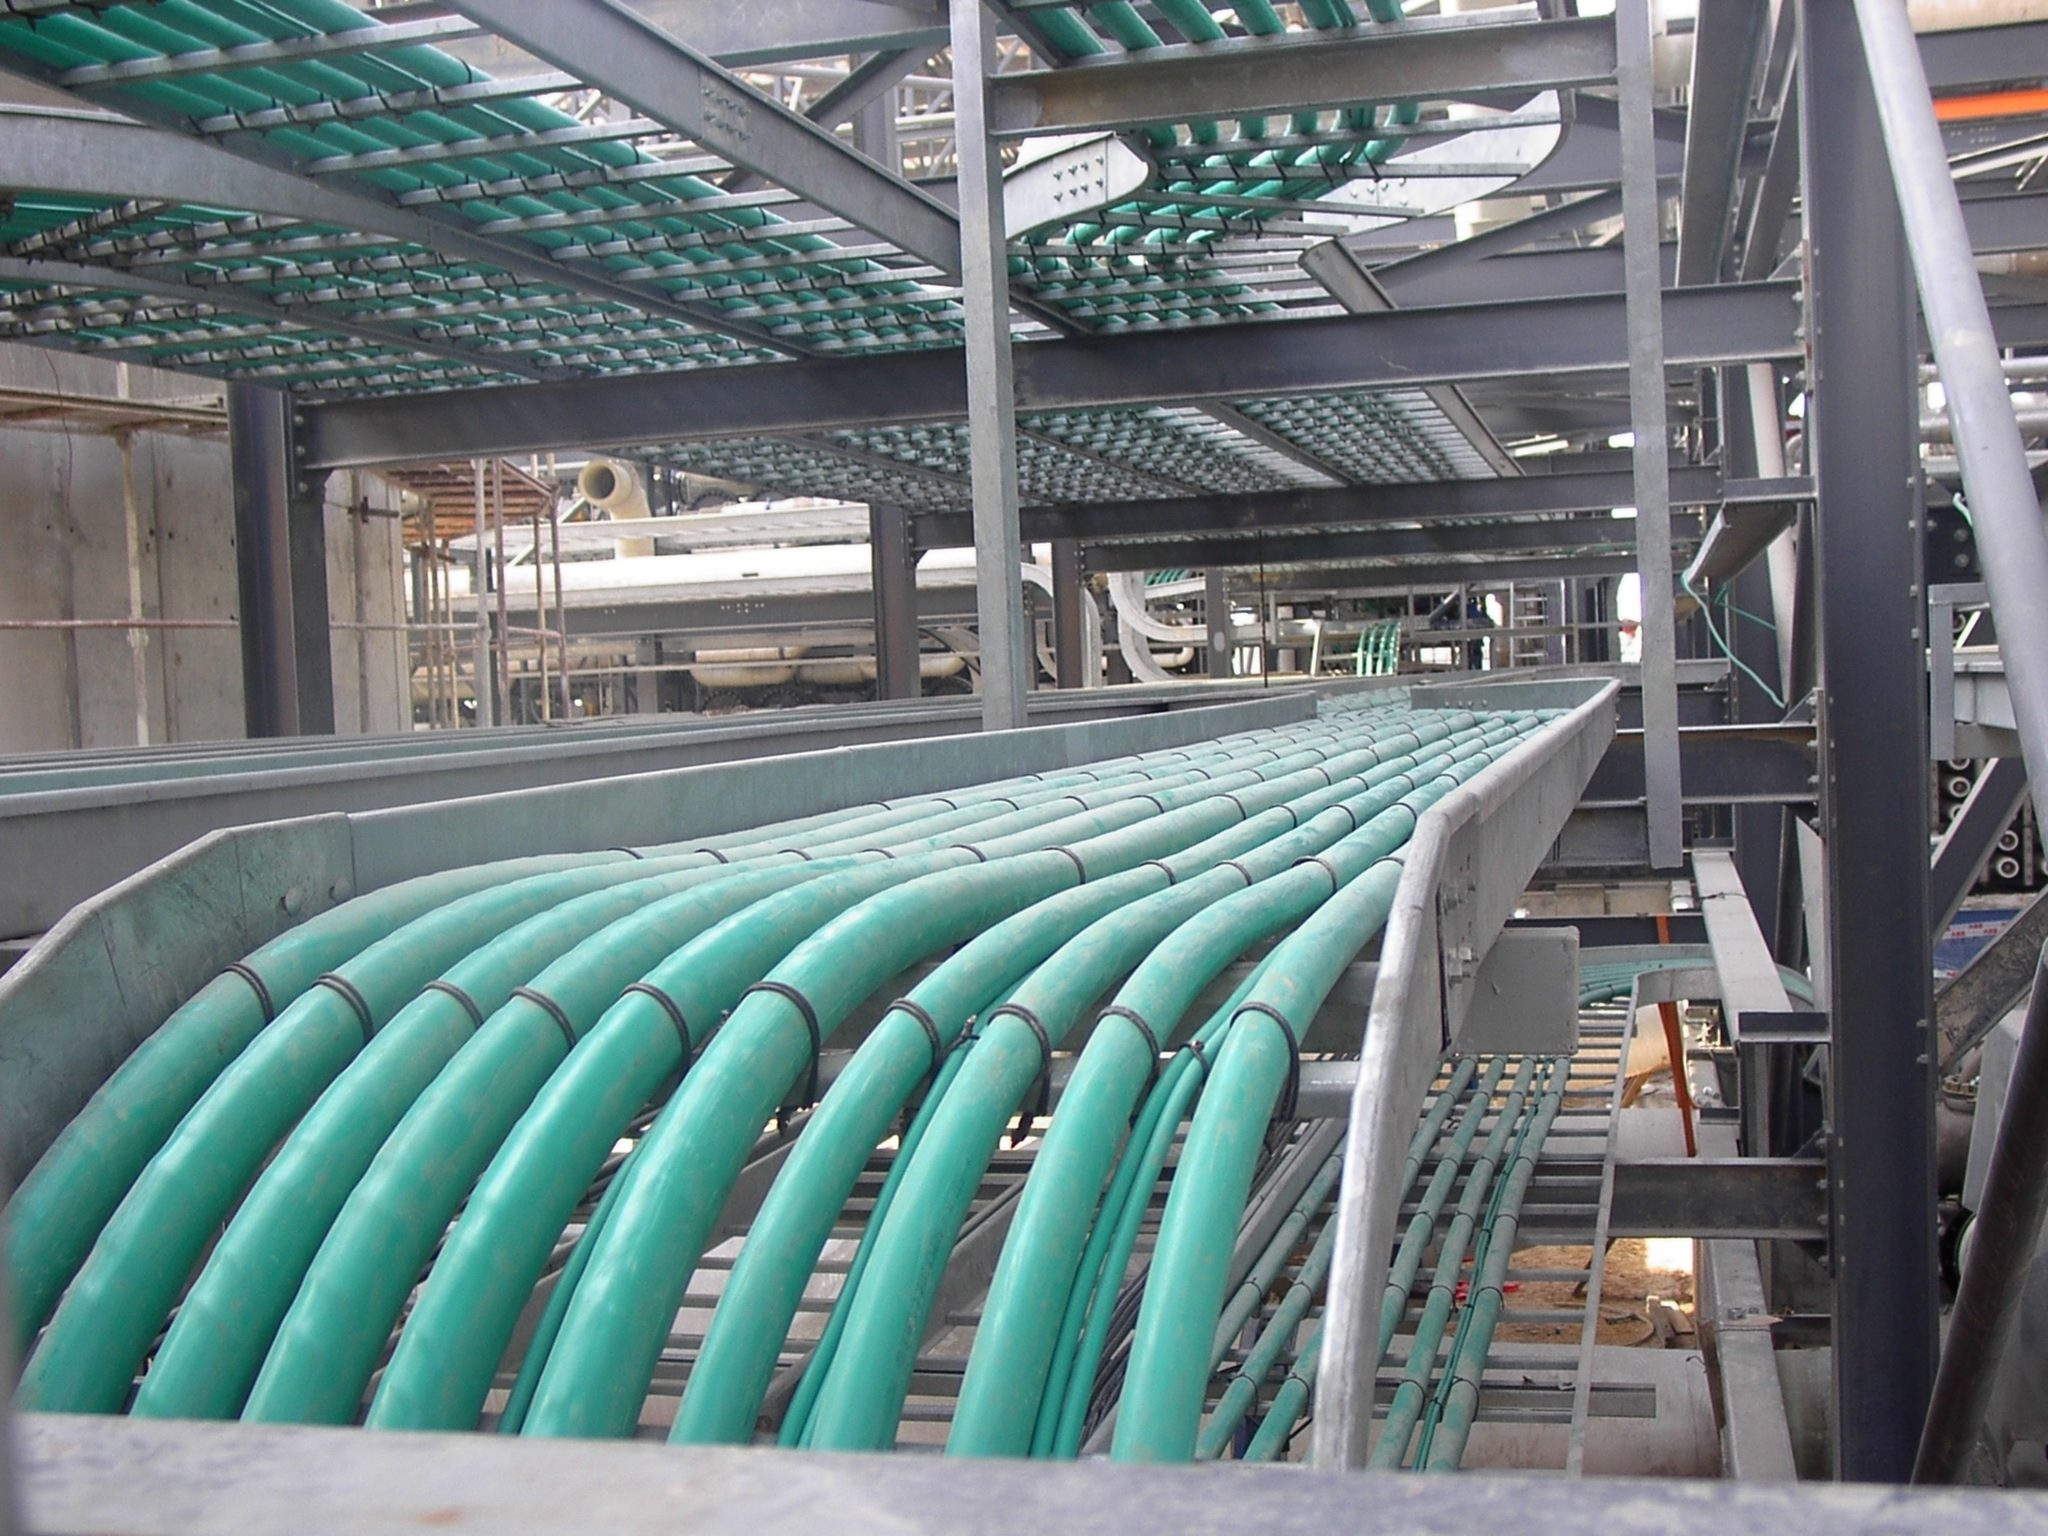 Cable Trays And Carriers Signaline Linear Heat Detection